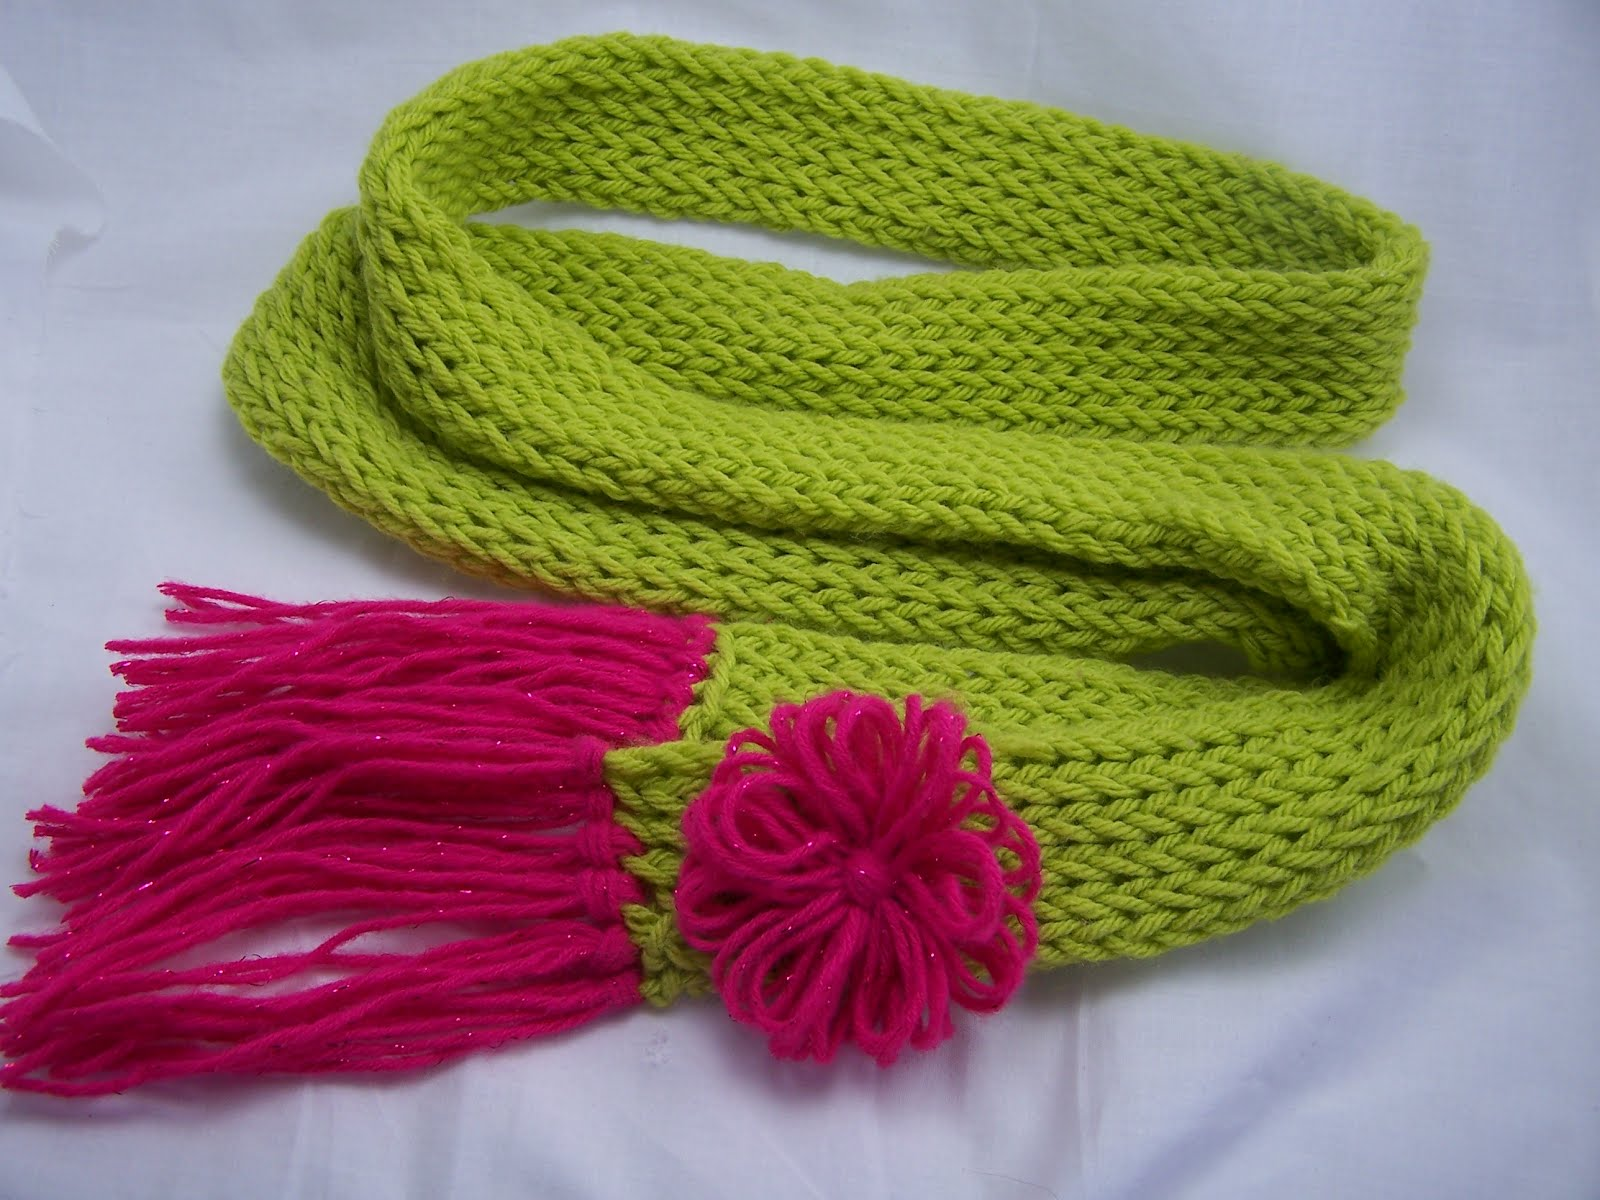 Knitting Loom Scarf Fringe : The Crafty Mermaid: Scarf and flower pin